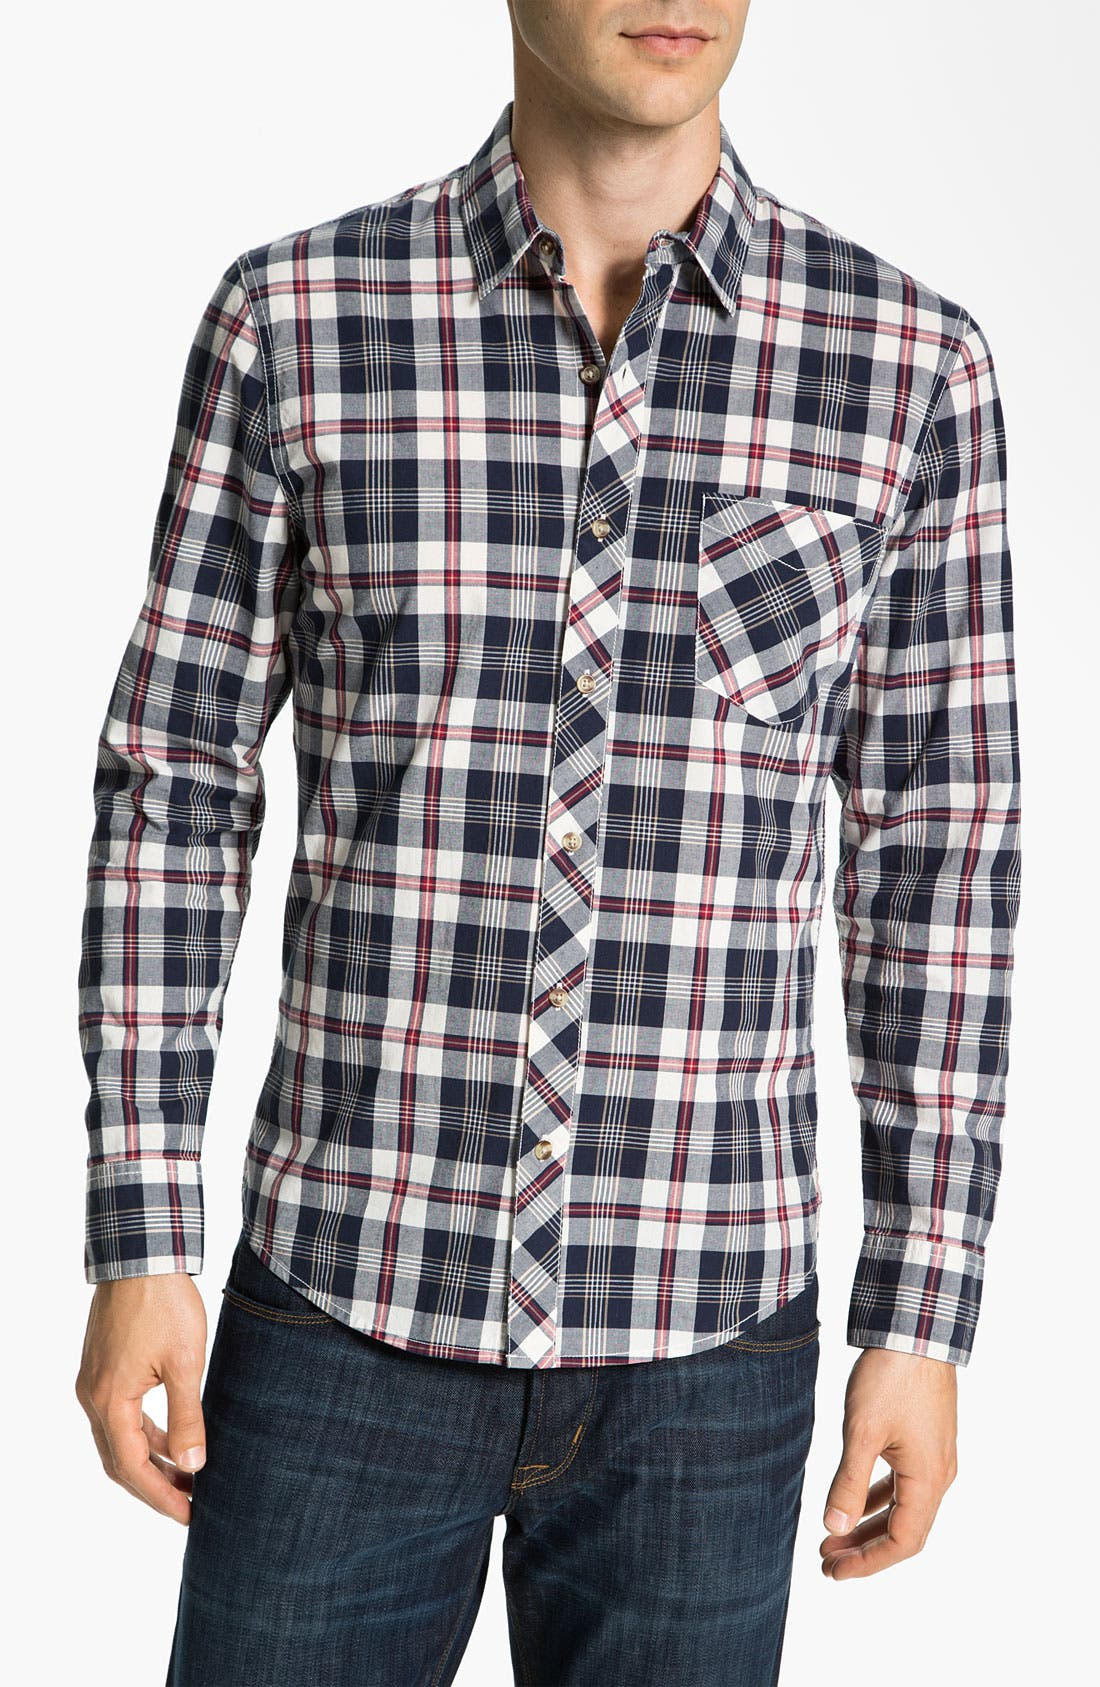 Main Image - 1901 Plaid Cotton Poplin Shirt